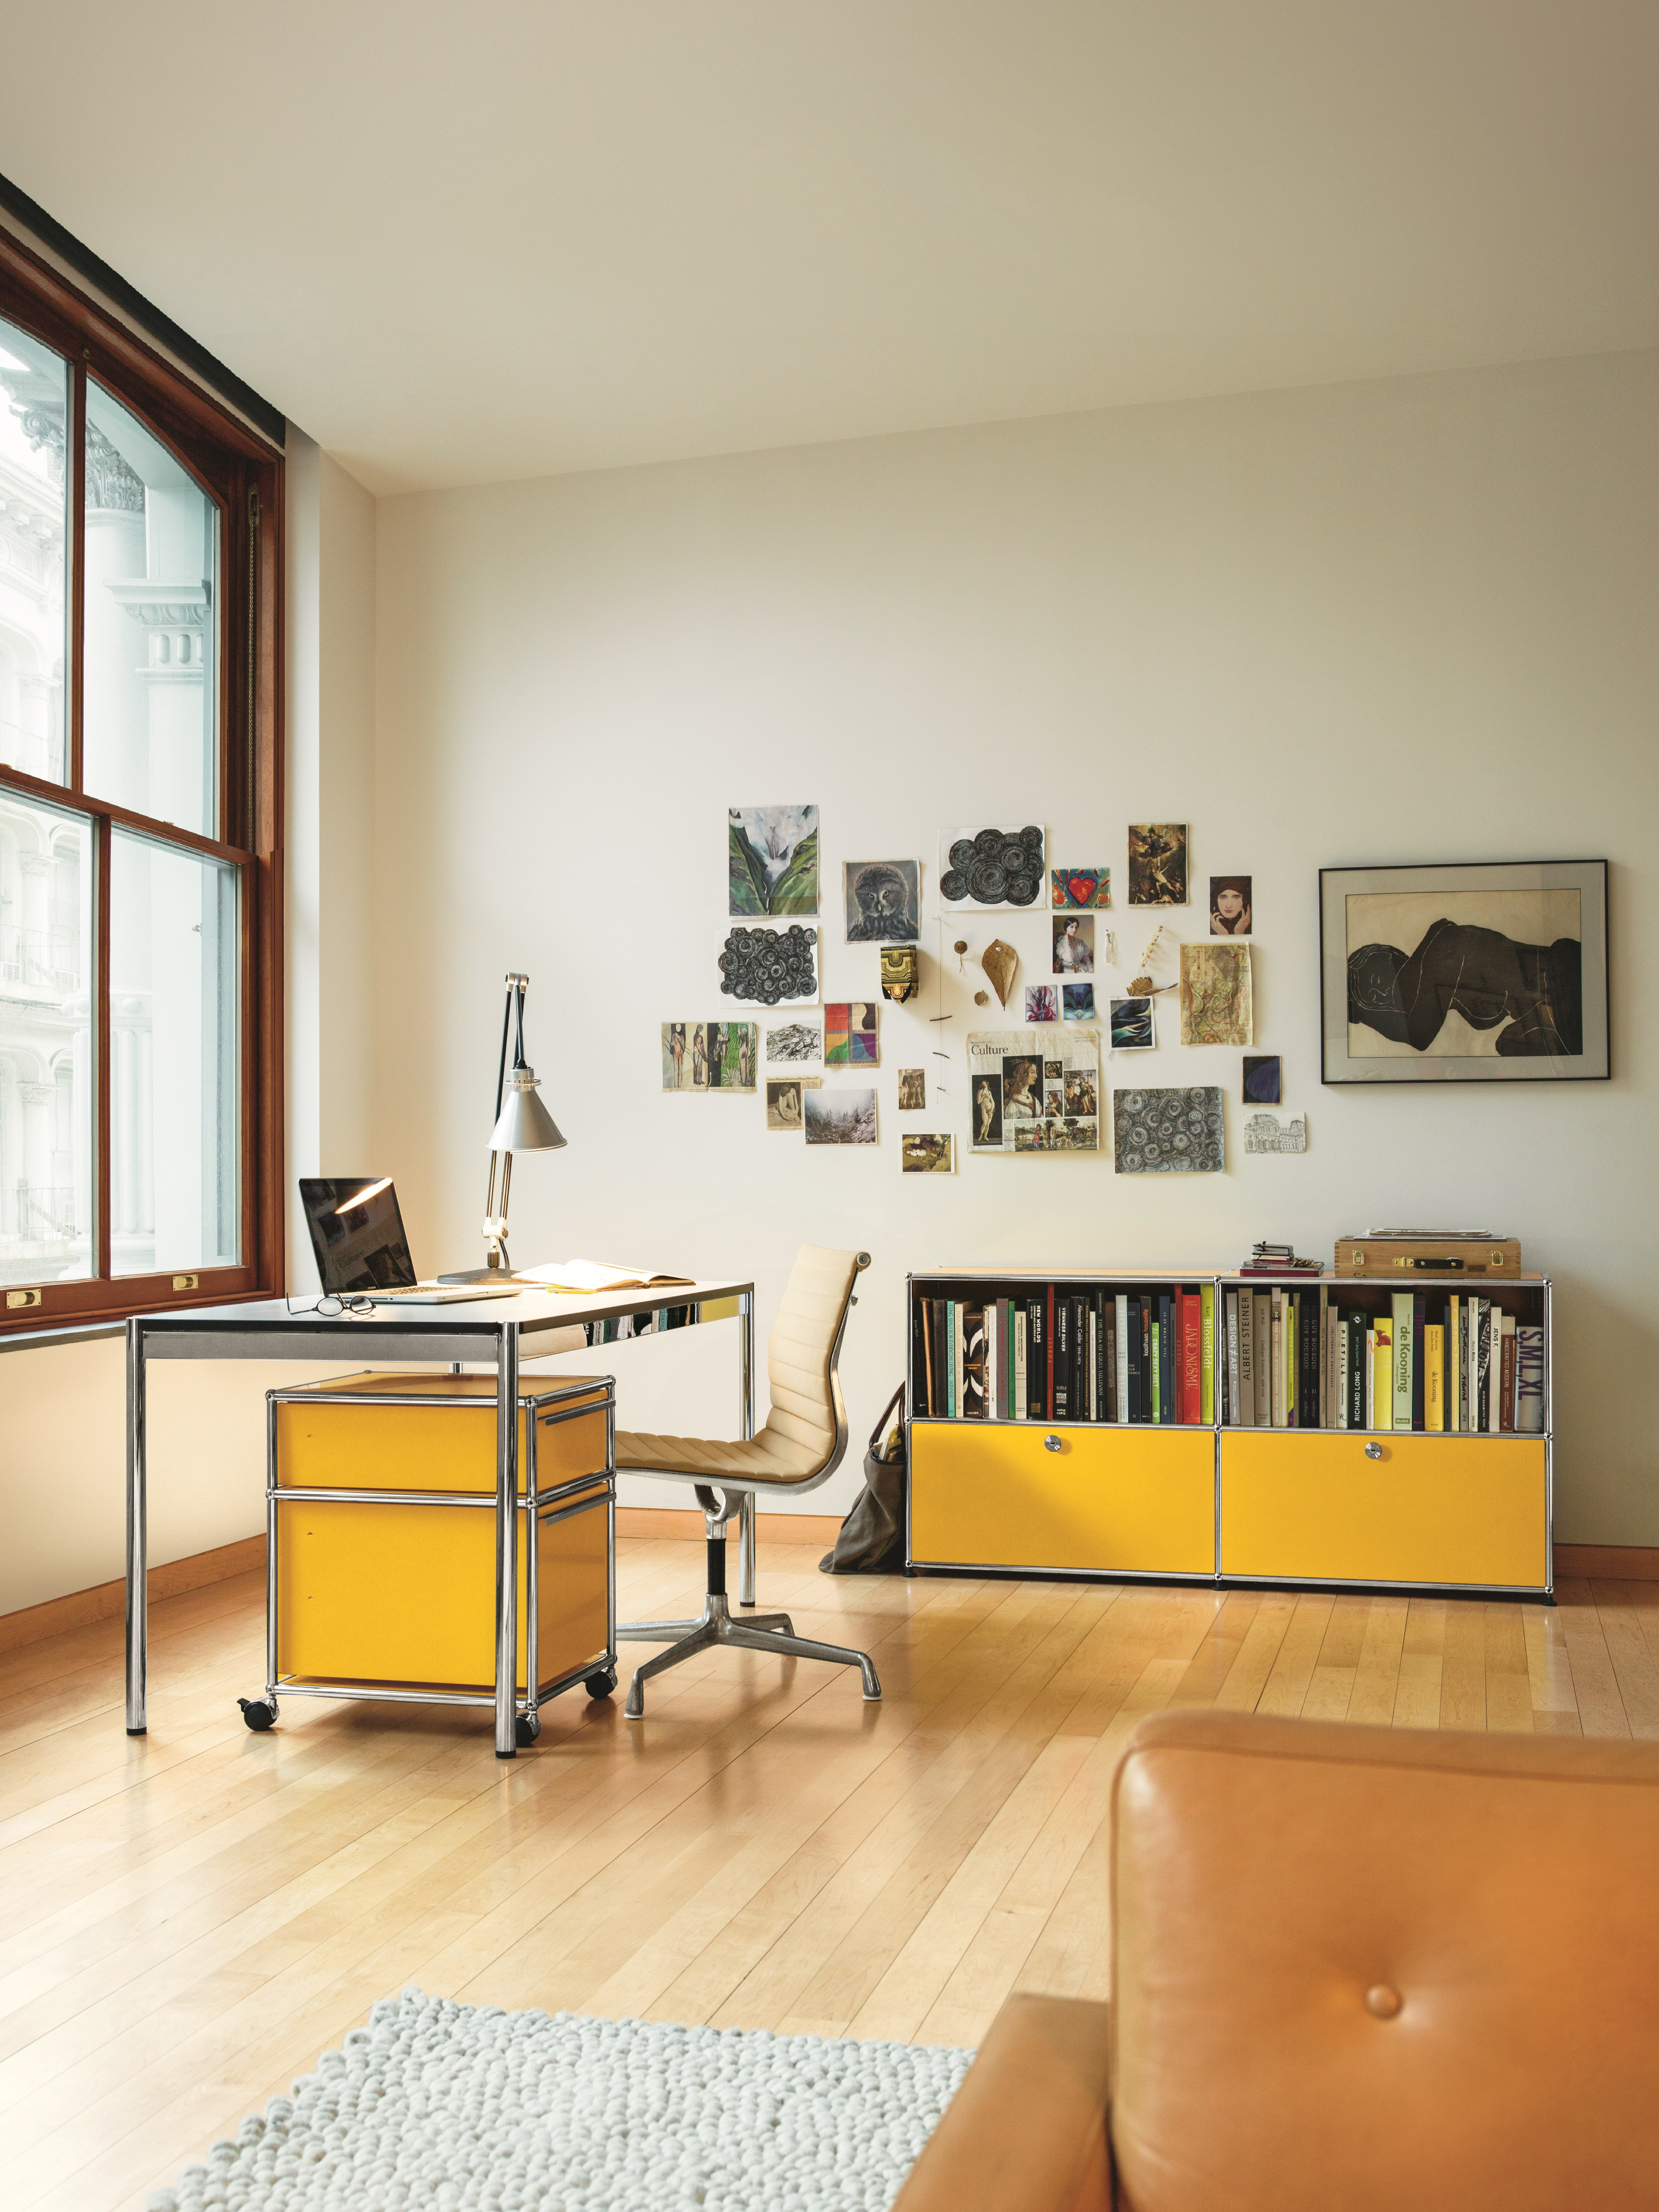 yellow USM Haller desk sideboard and table in minimalist home office